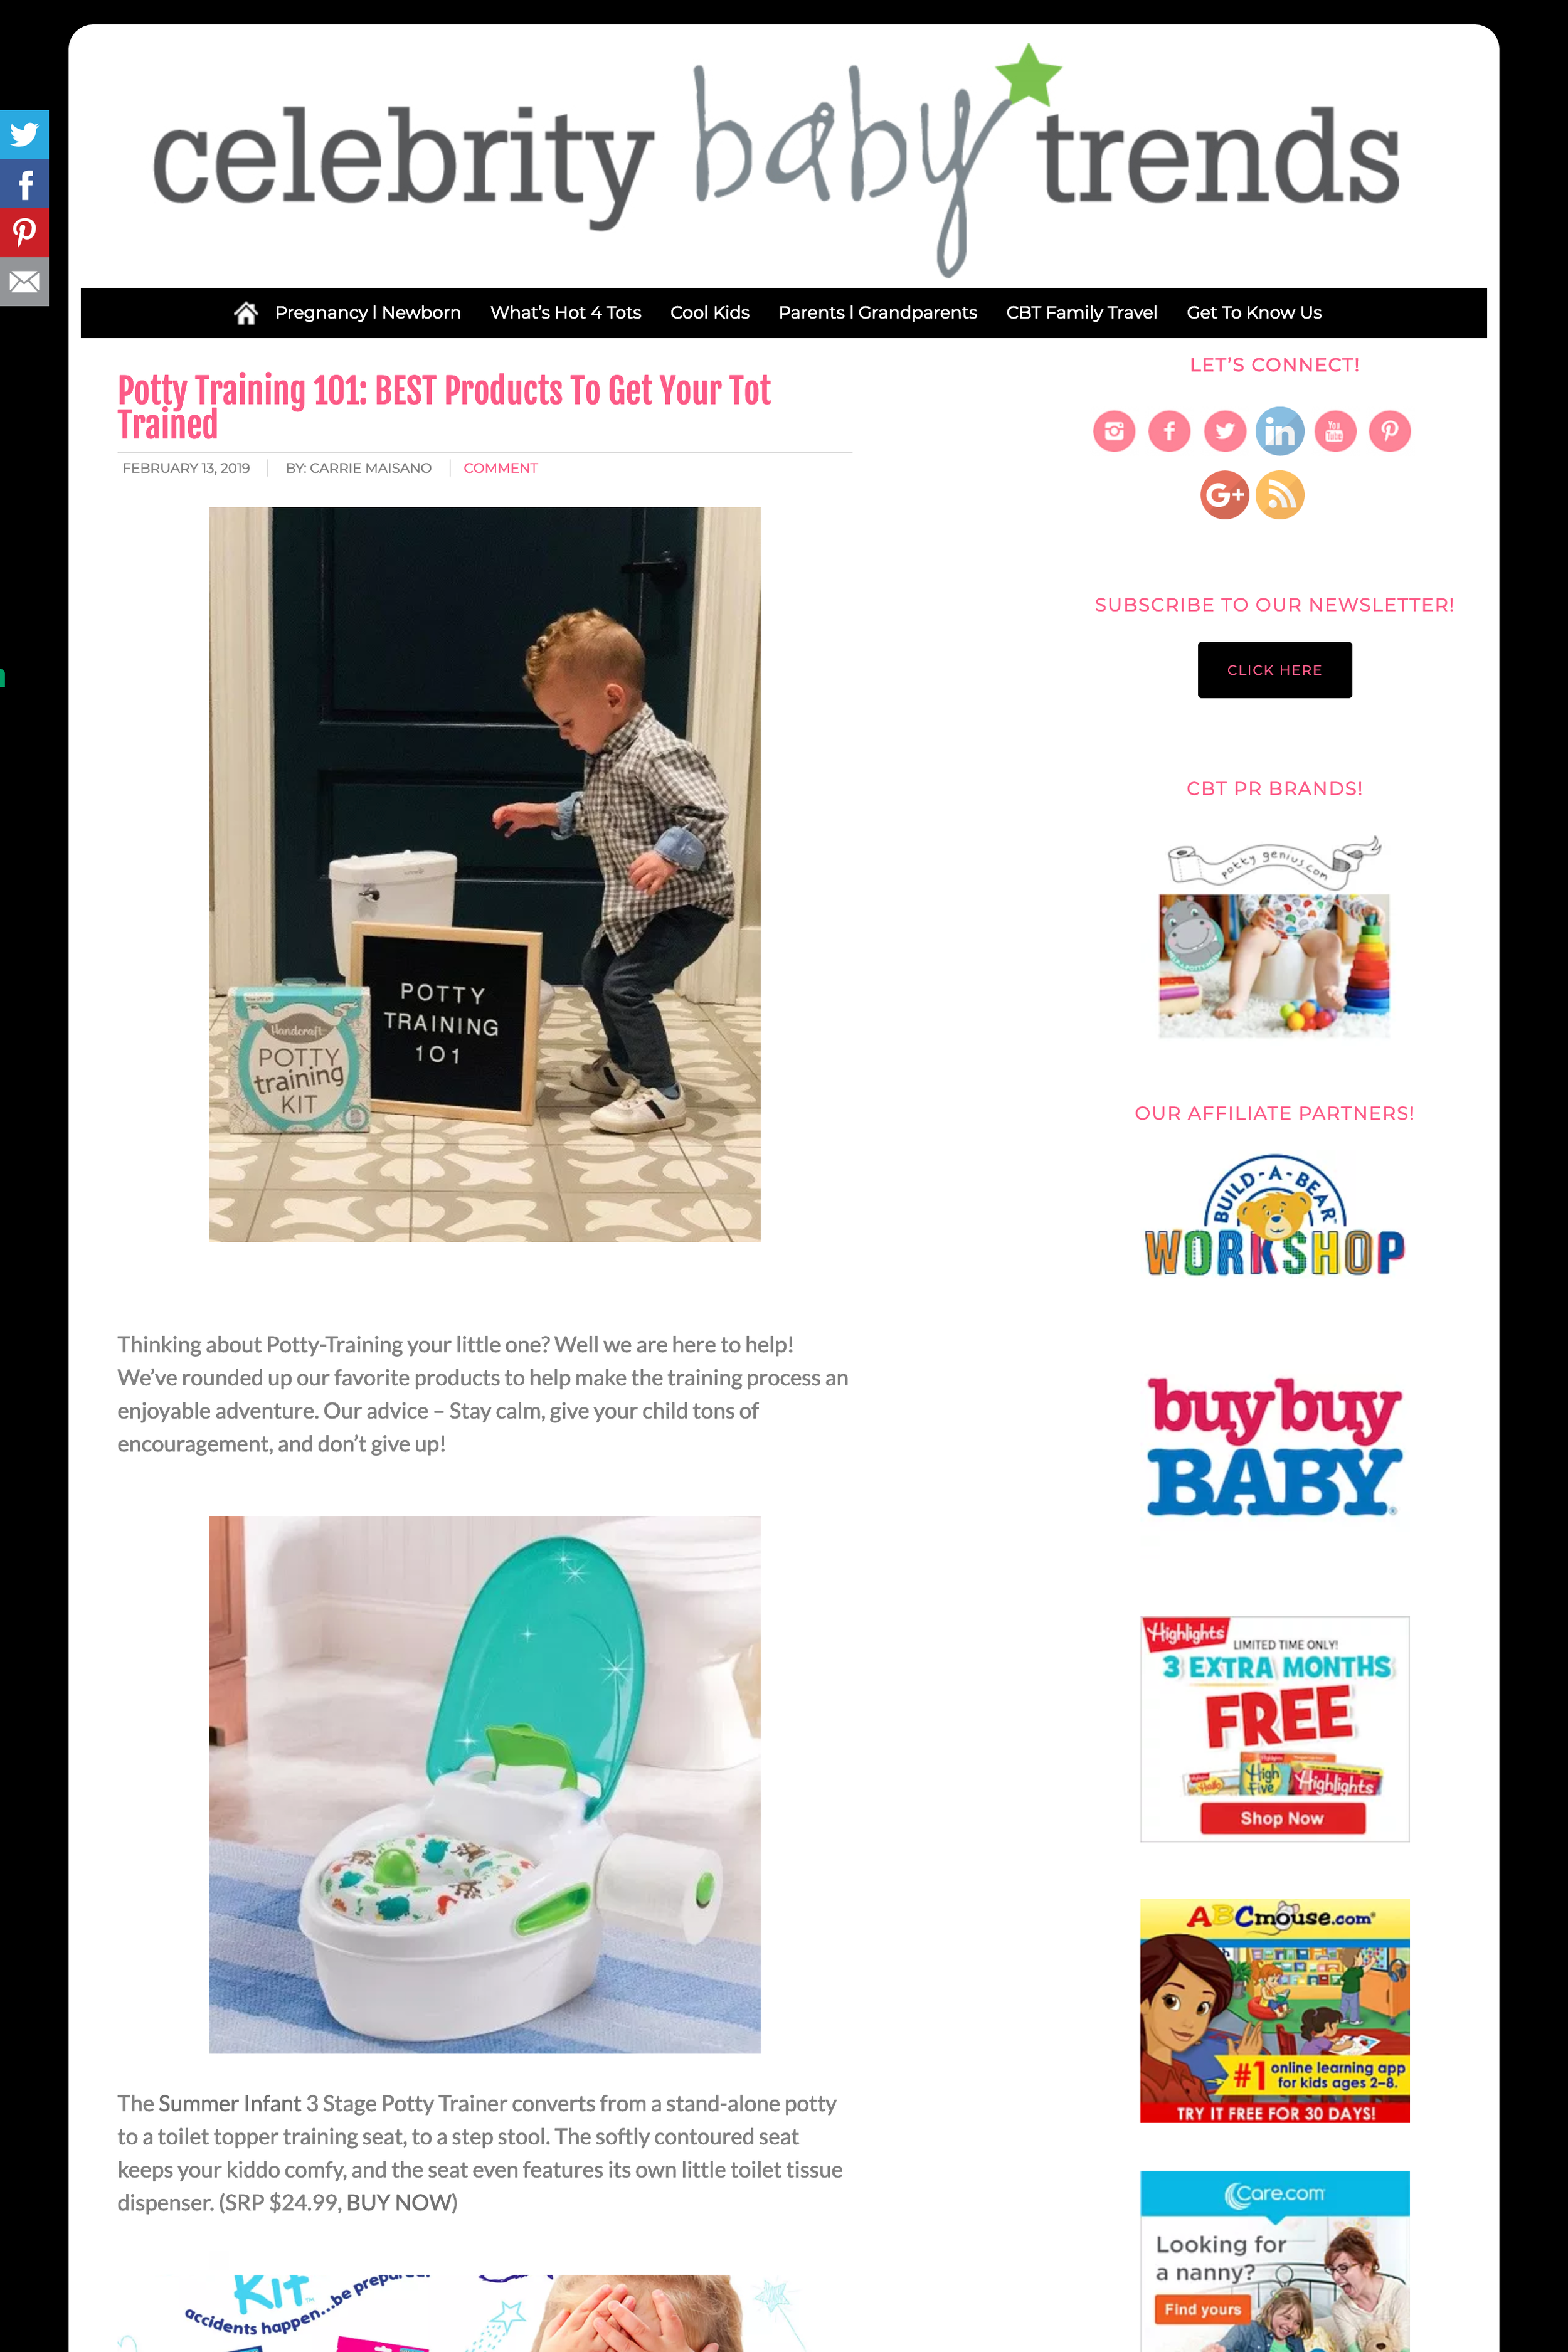 2019.02.13_Celebrity Baby Trends_Summer 3 Stage Potty Trainer_cropped 2x3.png